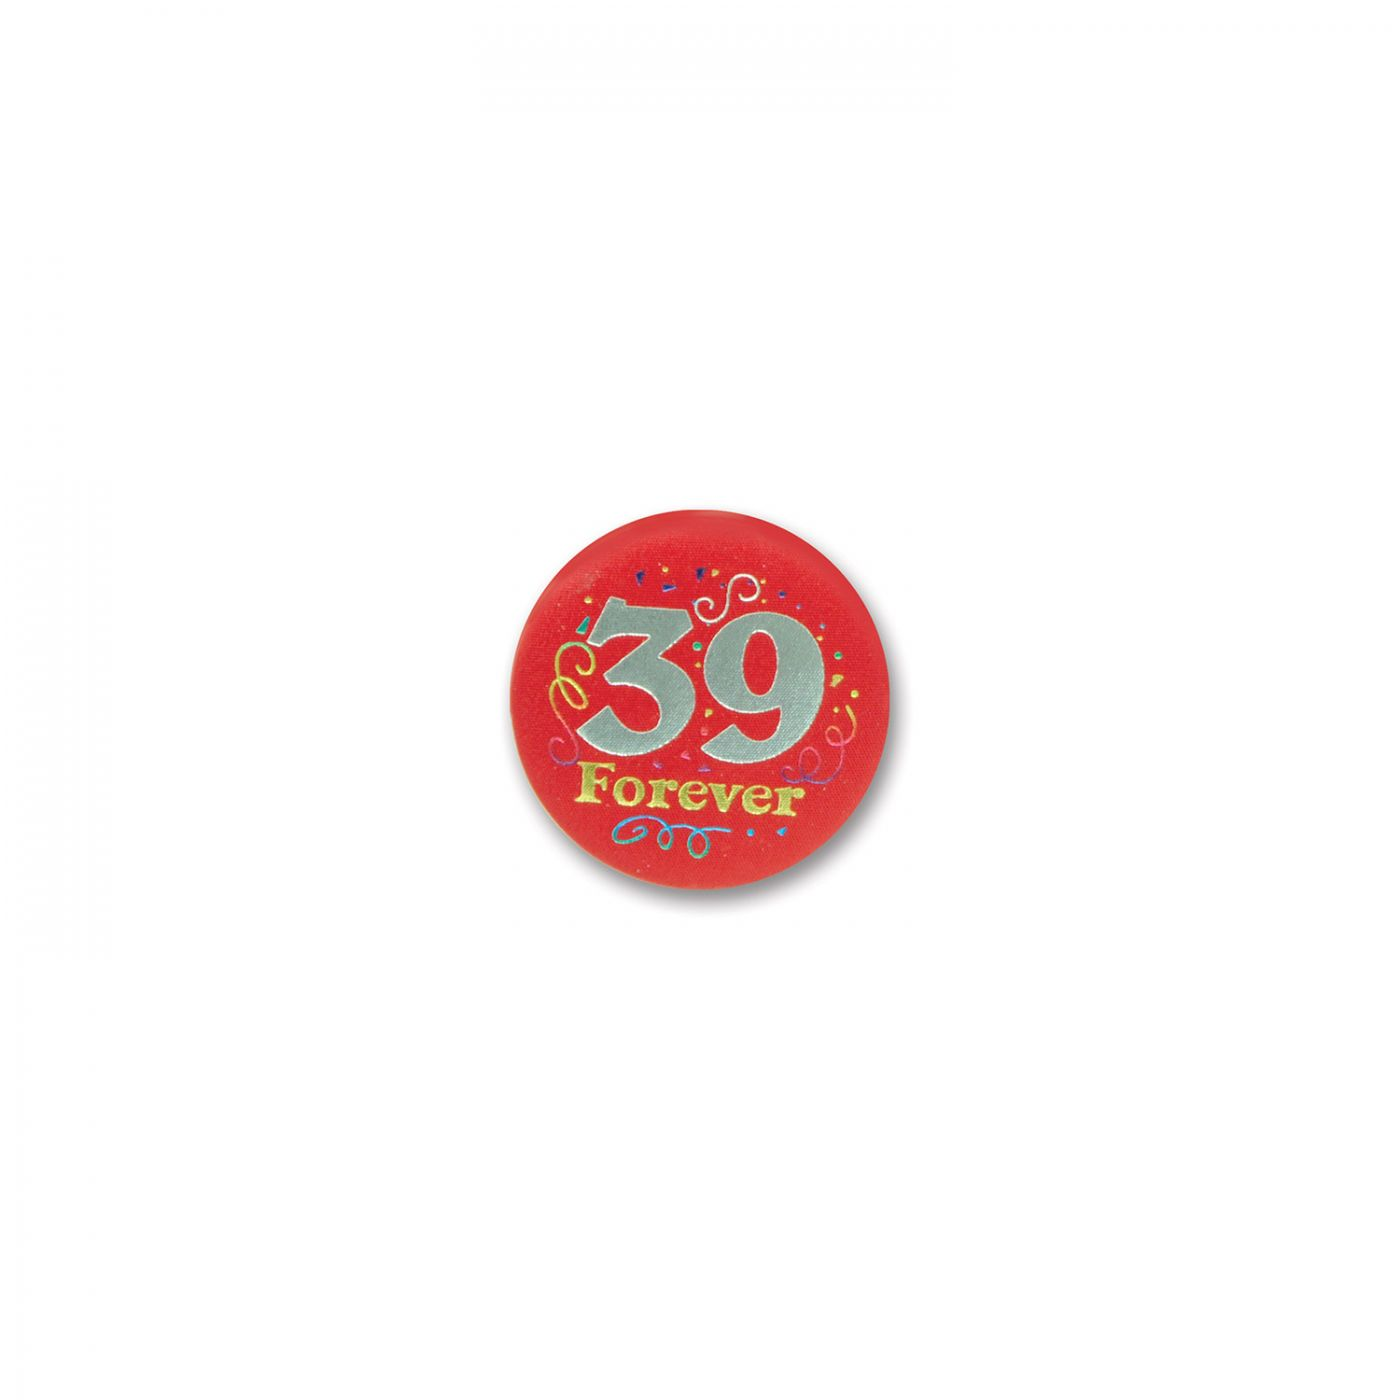 39 Forever Satin Button (6) image